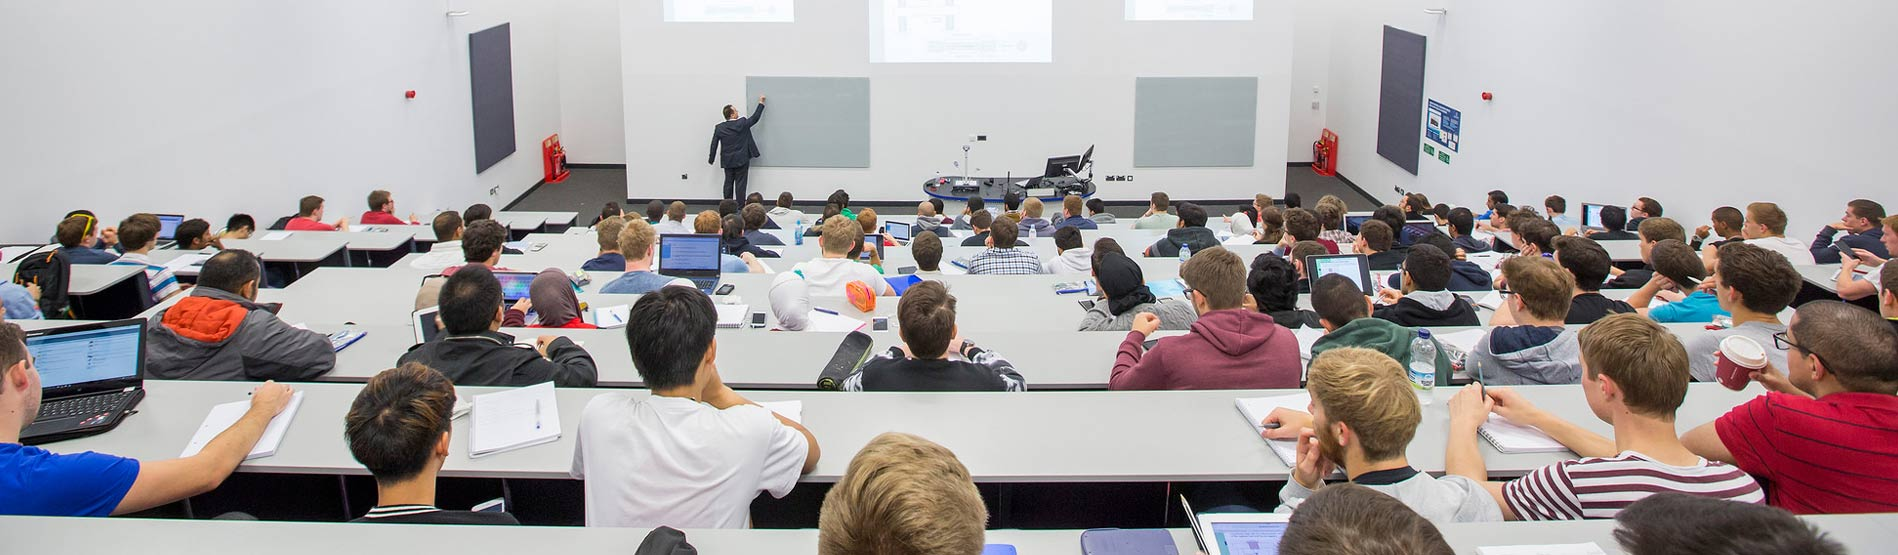 A view from the back of a lecture theatre of students sat in rows and a lecturer pointing at the board at the front of the class